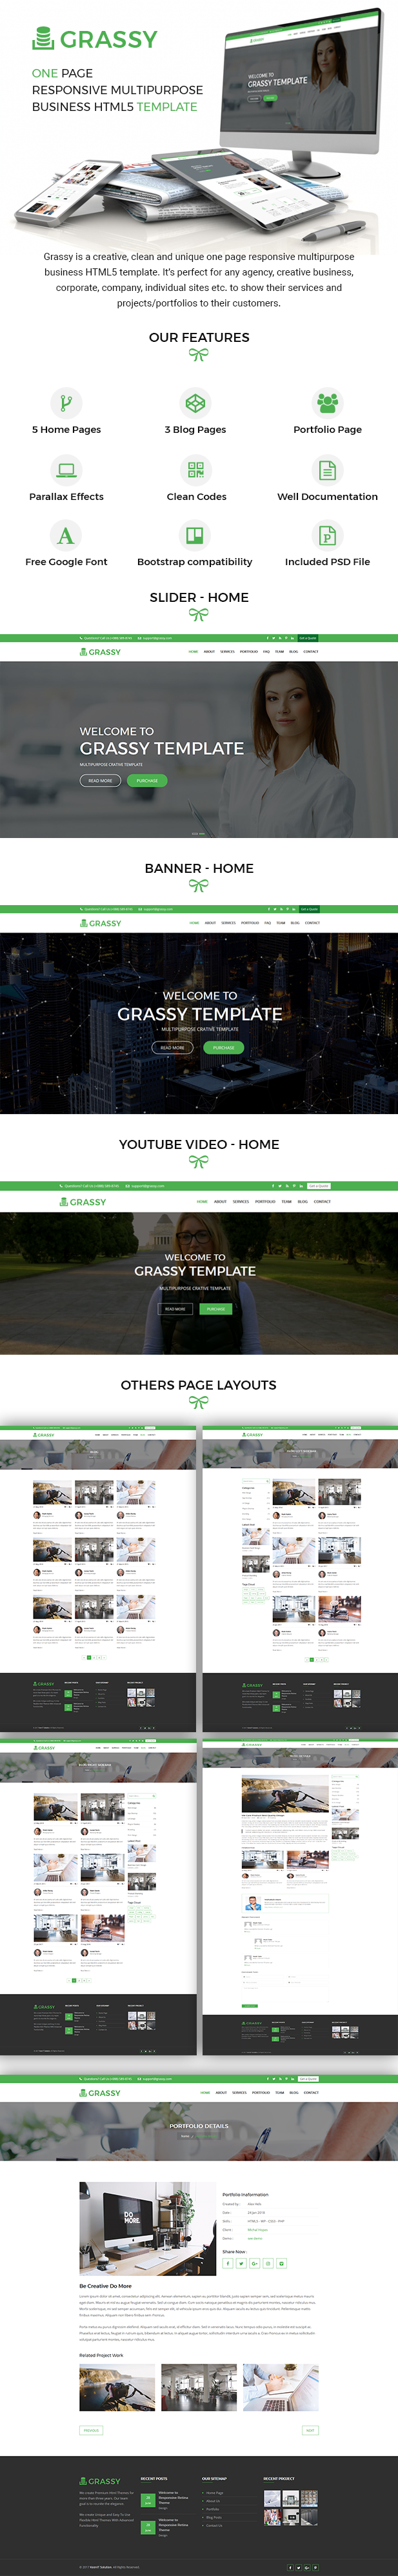 Grassy Business - Business, Corporate and Finance One Page HTML5 ...